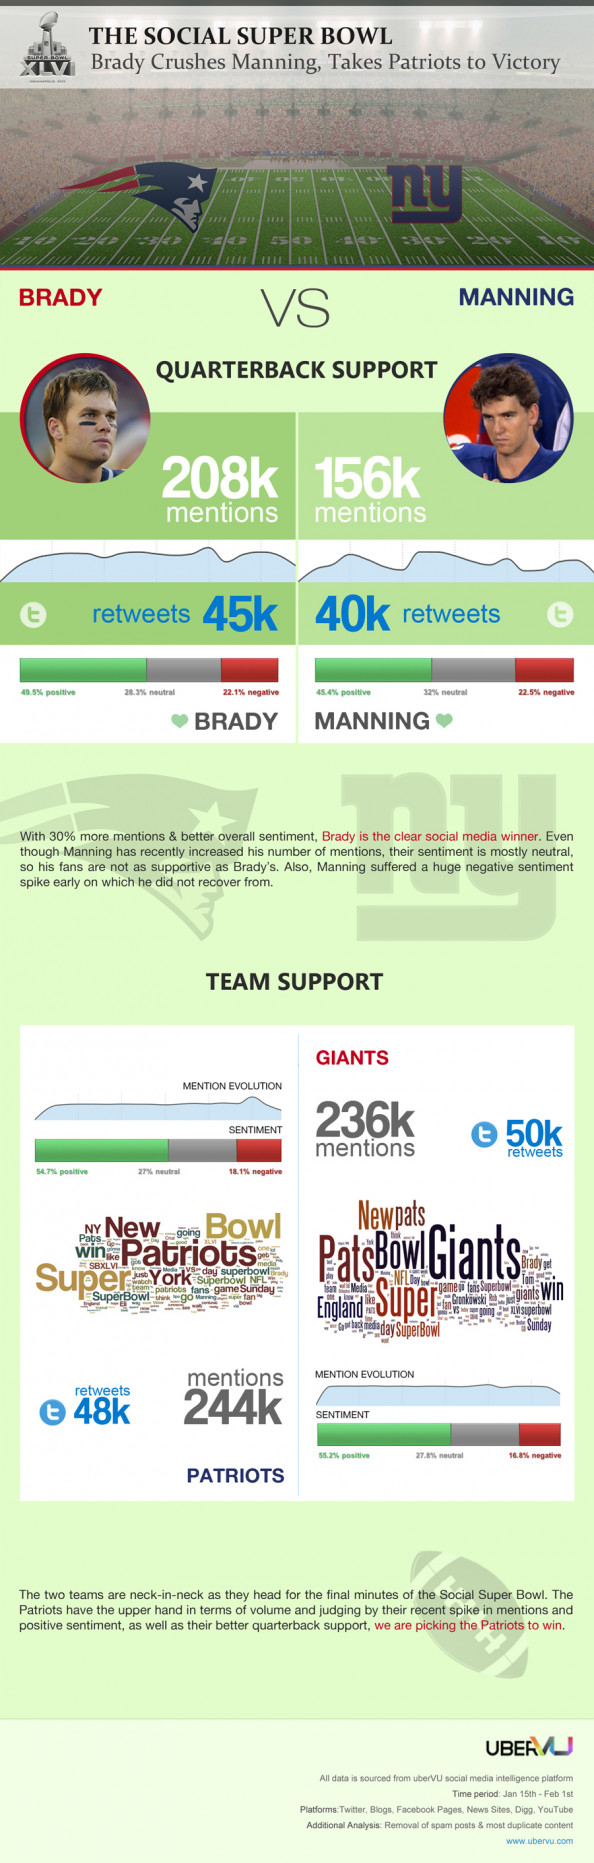 THE SOCIAL SUPER BOWL Infographic